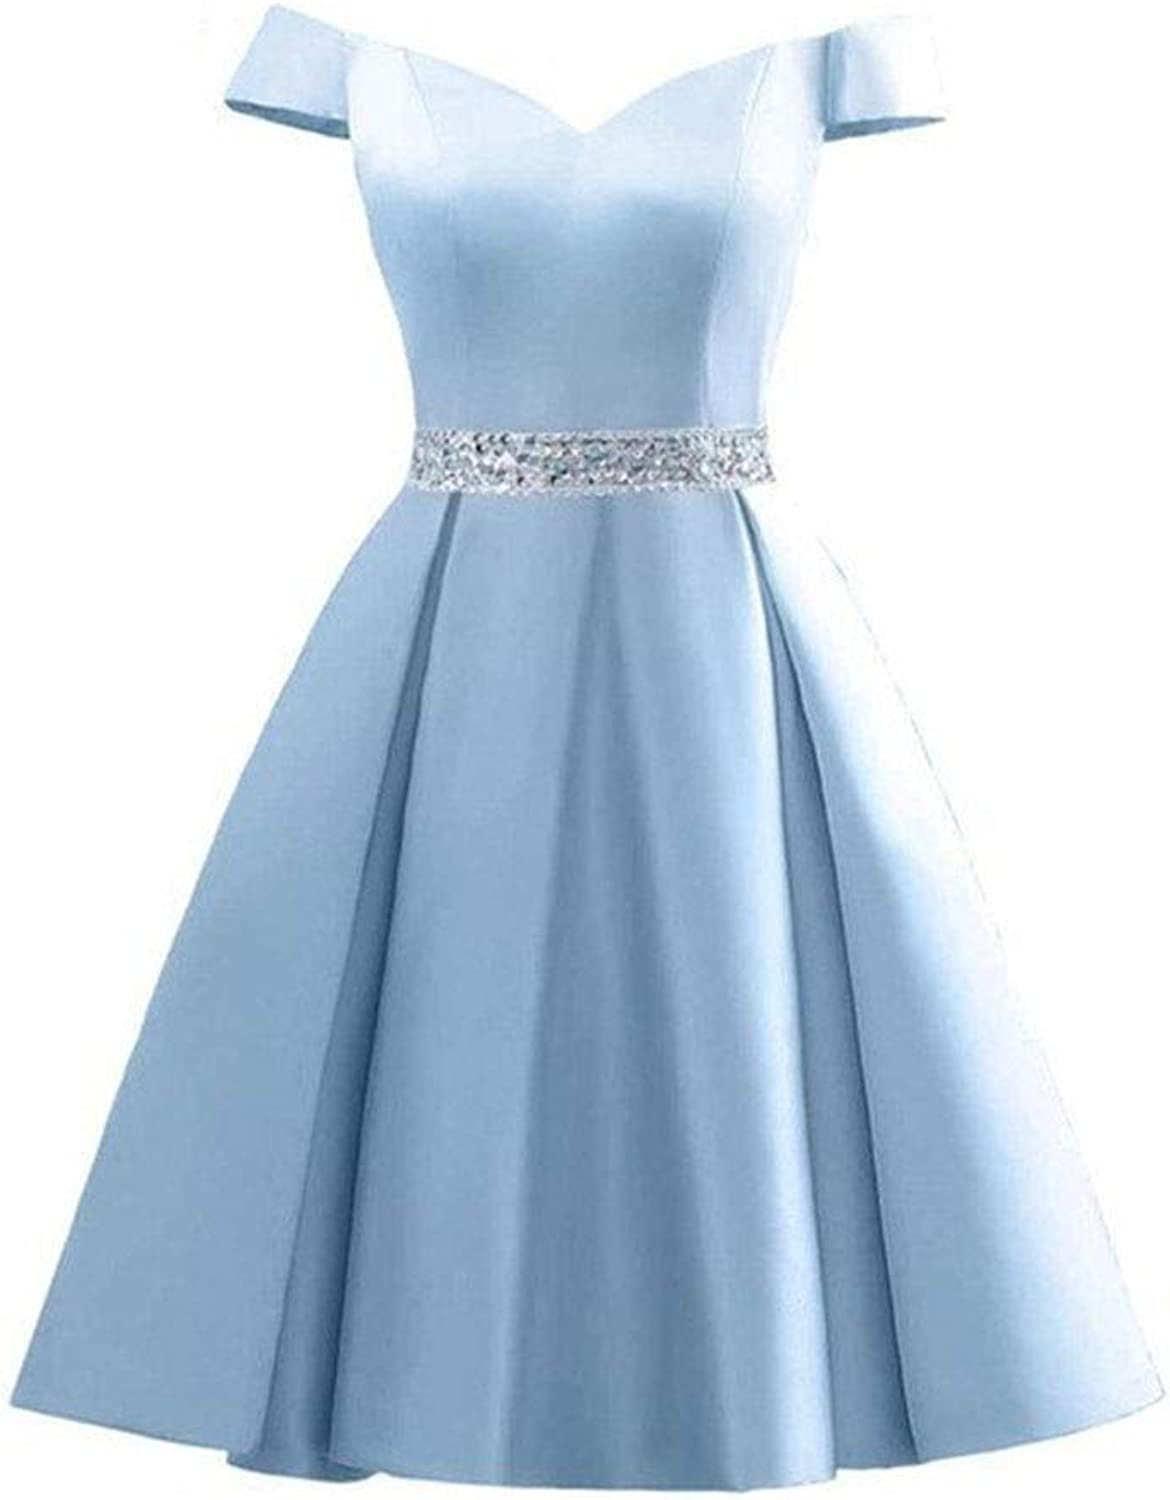 Kirabon Womens Sexy OneShoulder Dignified Little Evening Dress Birthday Party Dress (color   bluee, Size   US10)